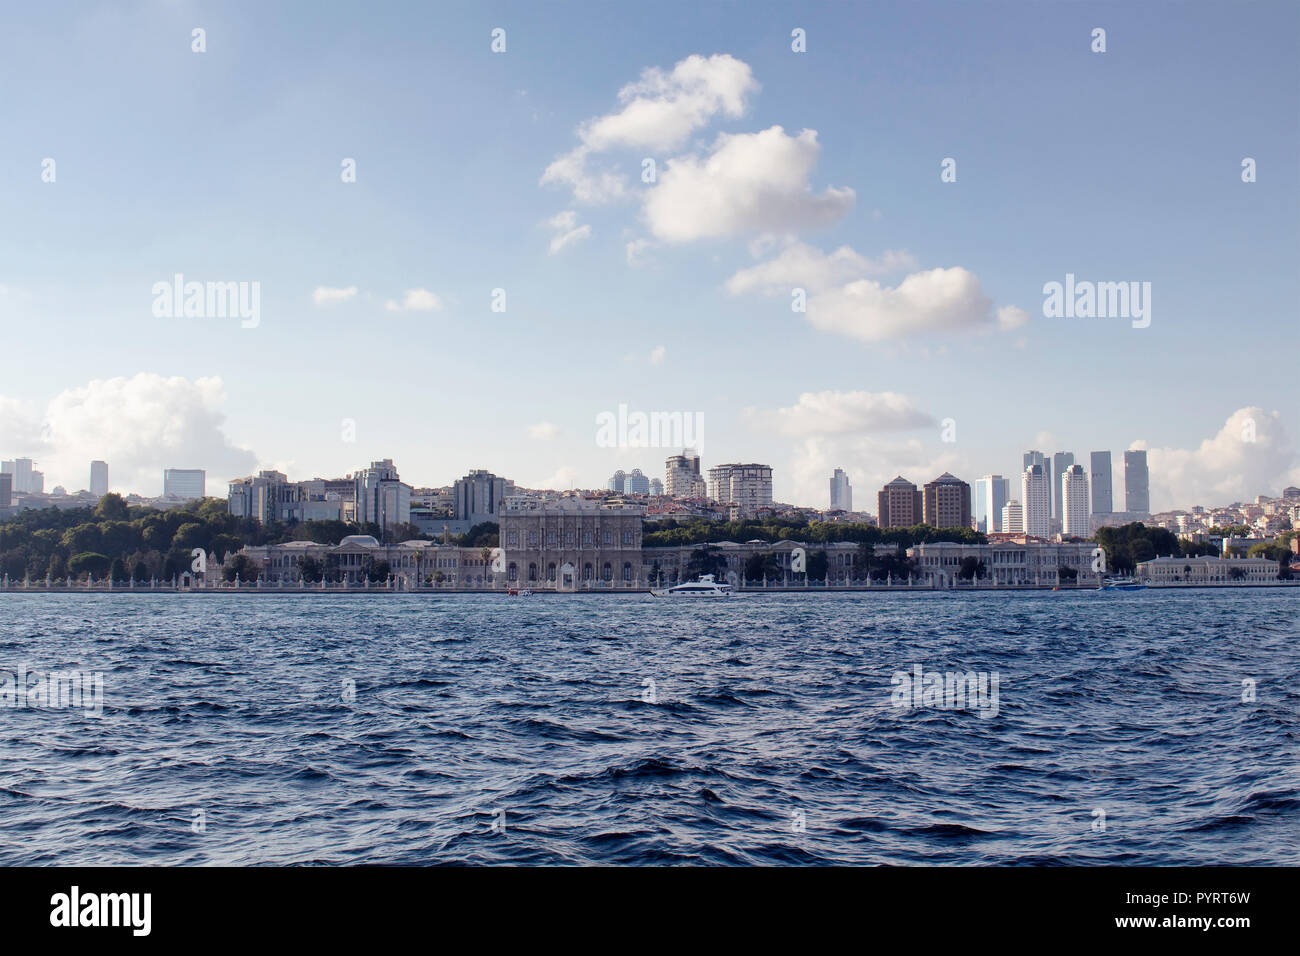 View of buildings on European side of Istanbul and Bosphorus strait. - Stock Image